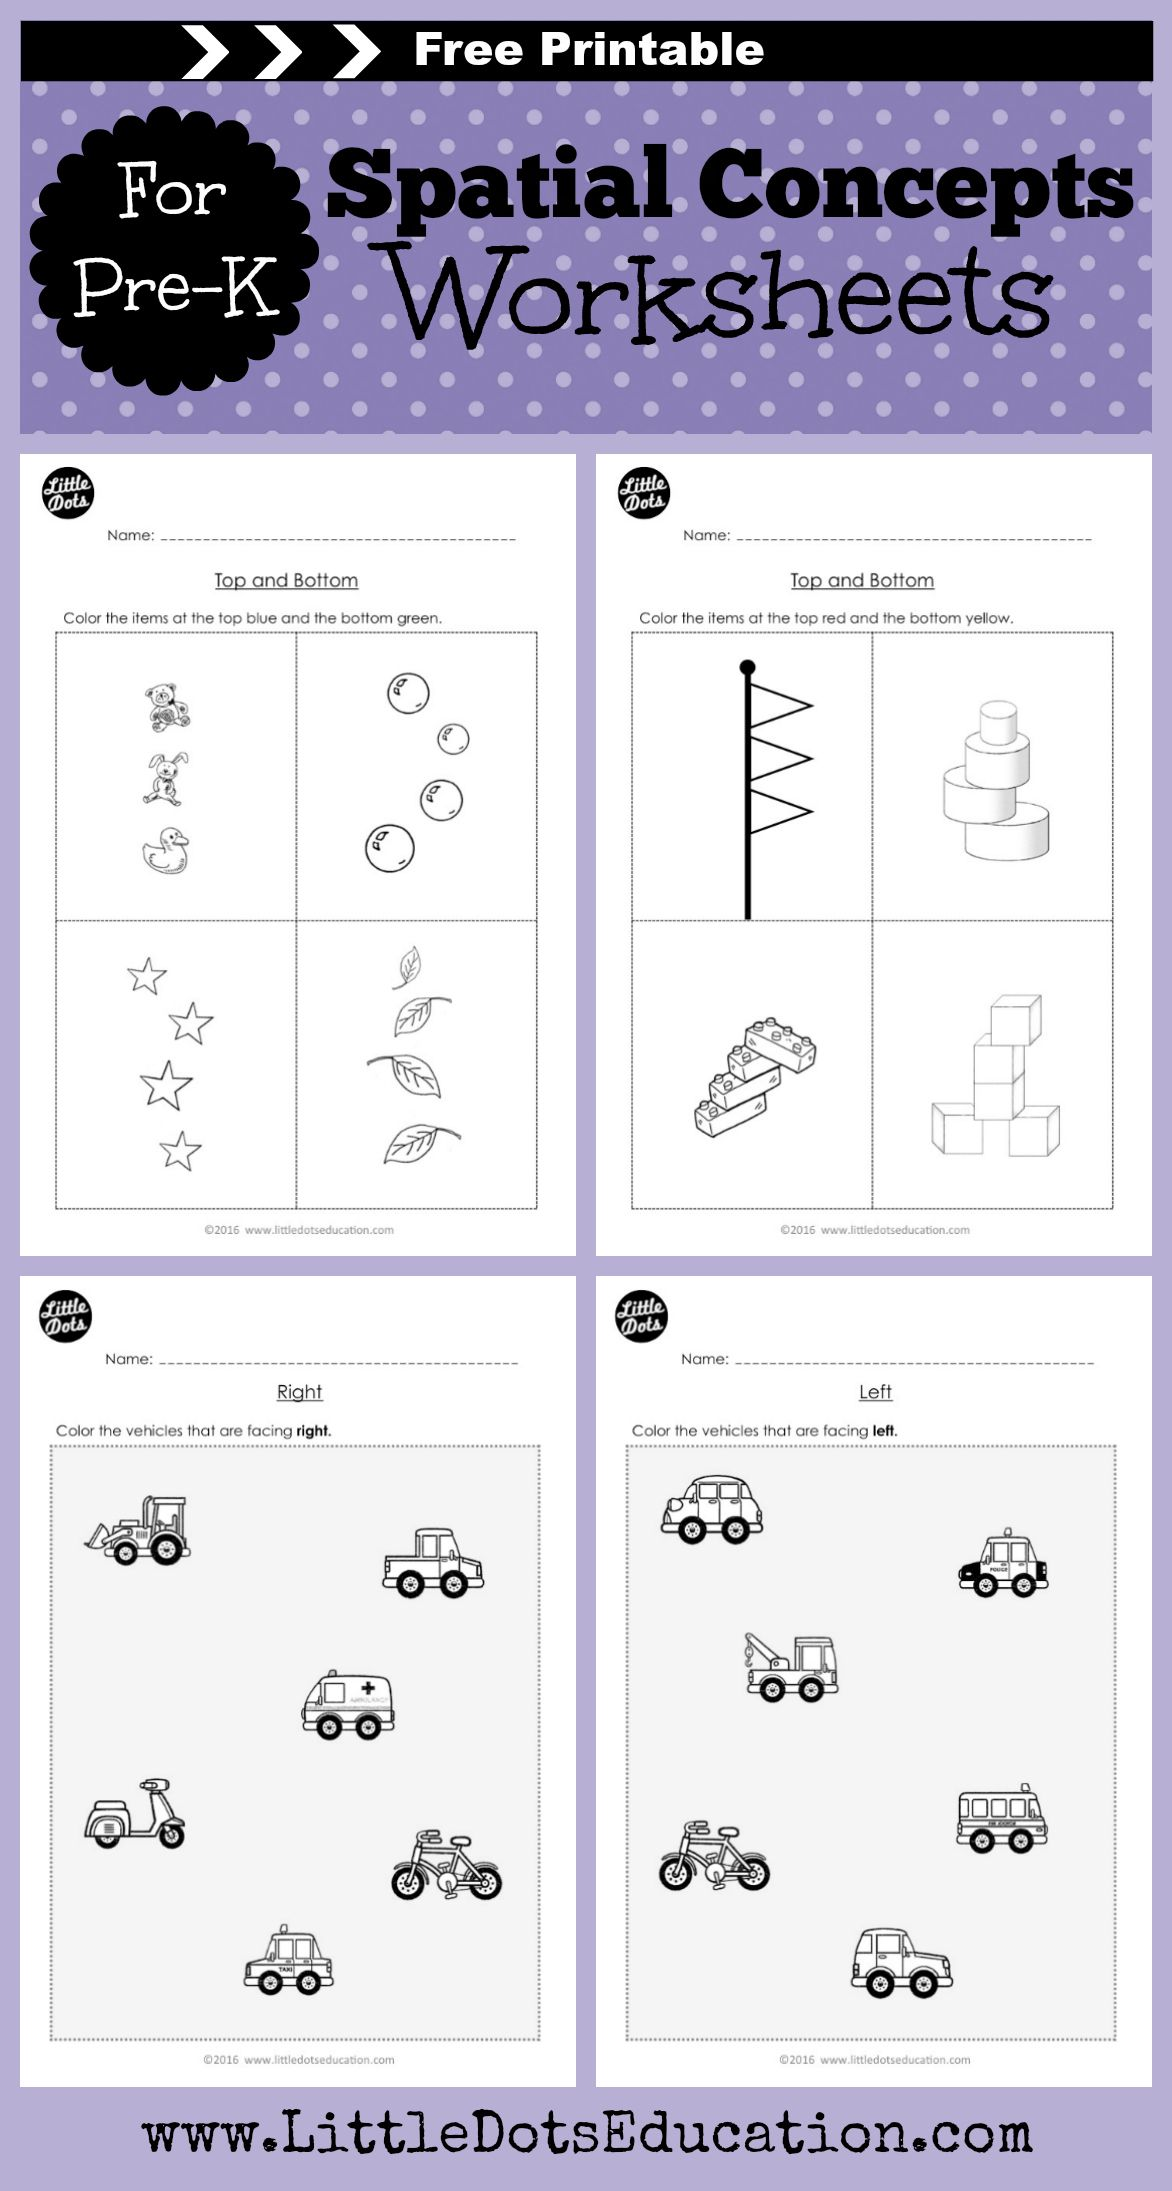 small resolution of Pre-K Spatial Concepts Worksheets and Activities   Spatial concepts